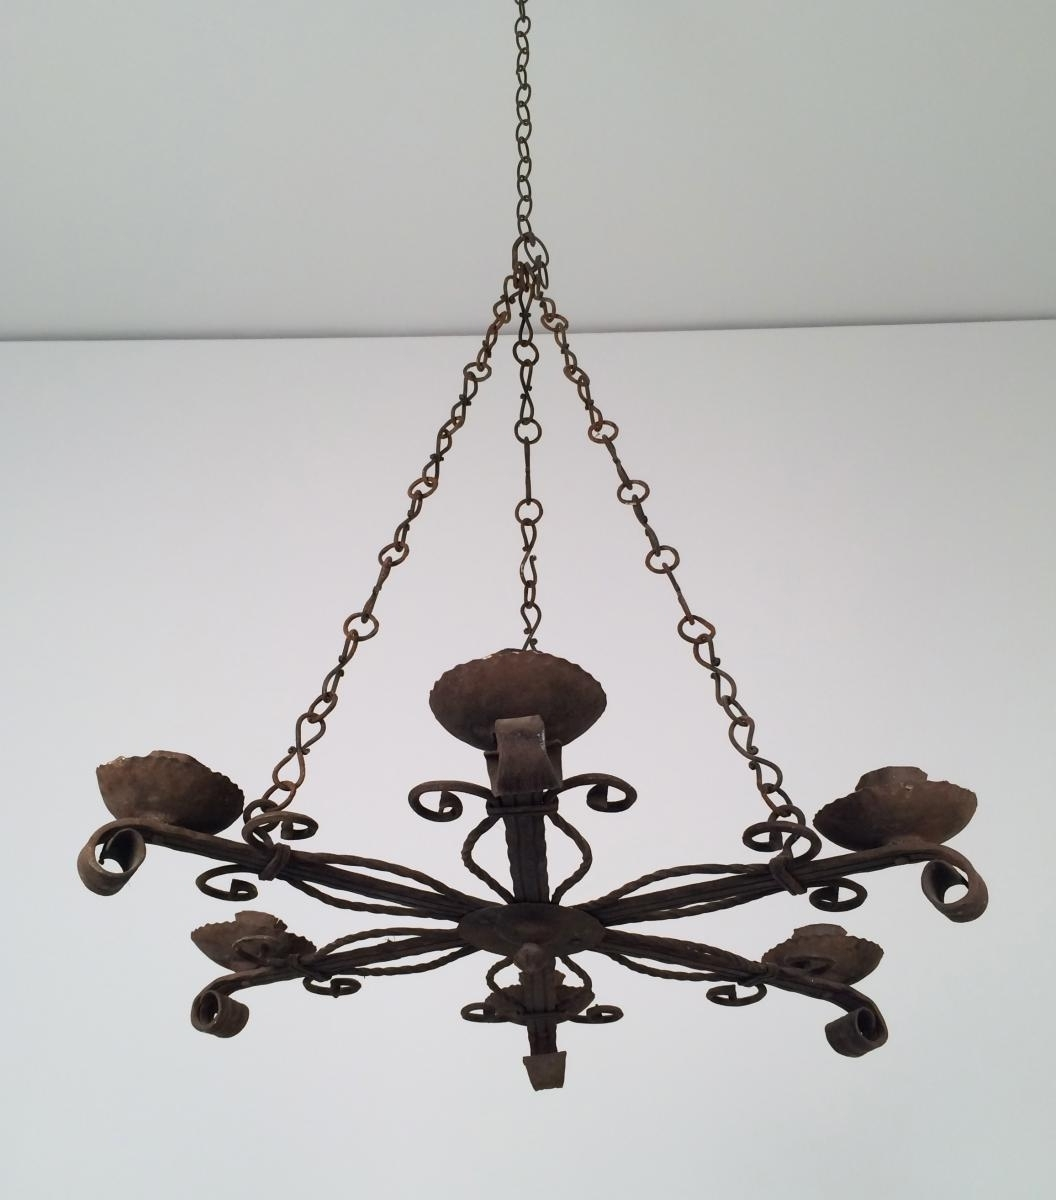 Wrought Iron Chandelier With 5 Candle Holders, 1920S For Sale At Pamono Regarding Preferred Wrought Iron Chandelier (View 16 of 20)